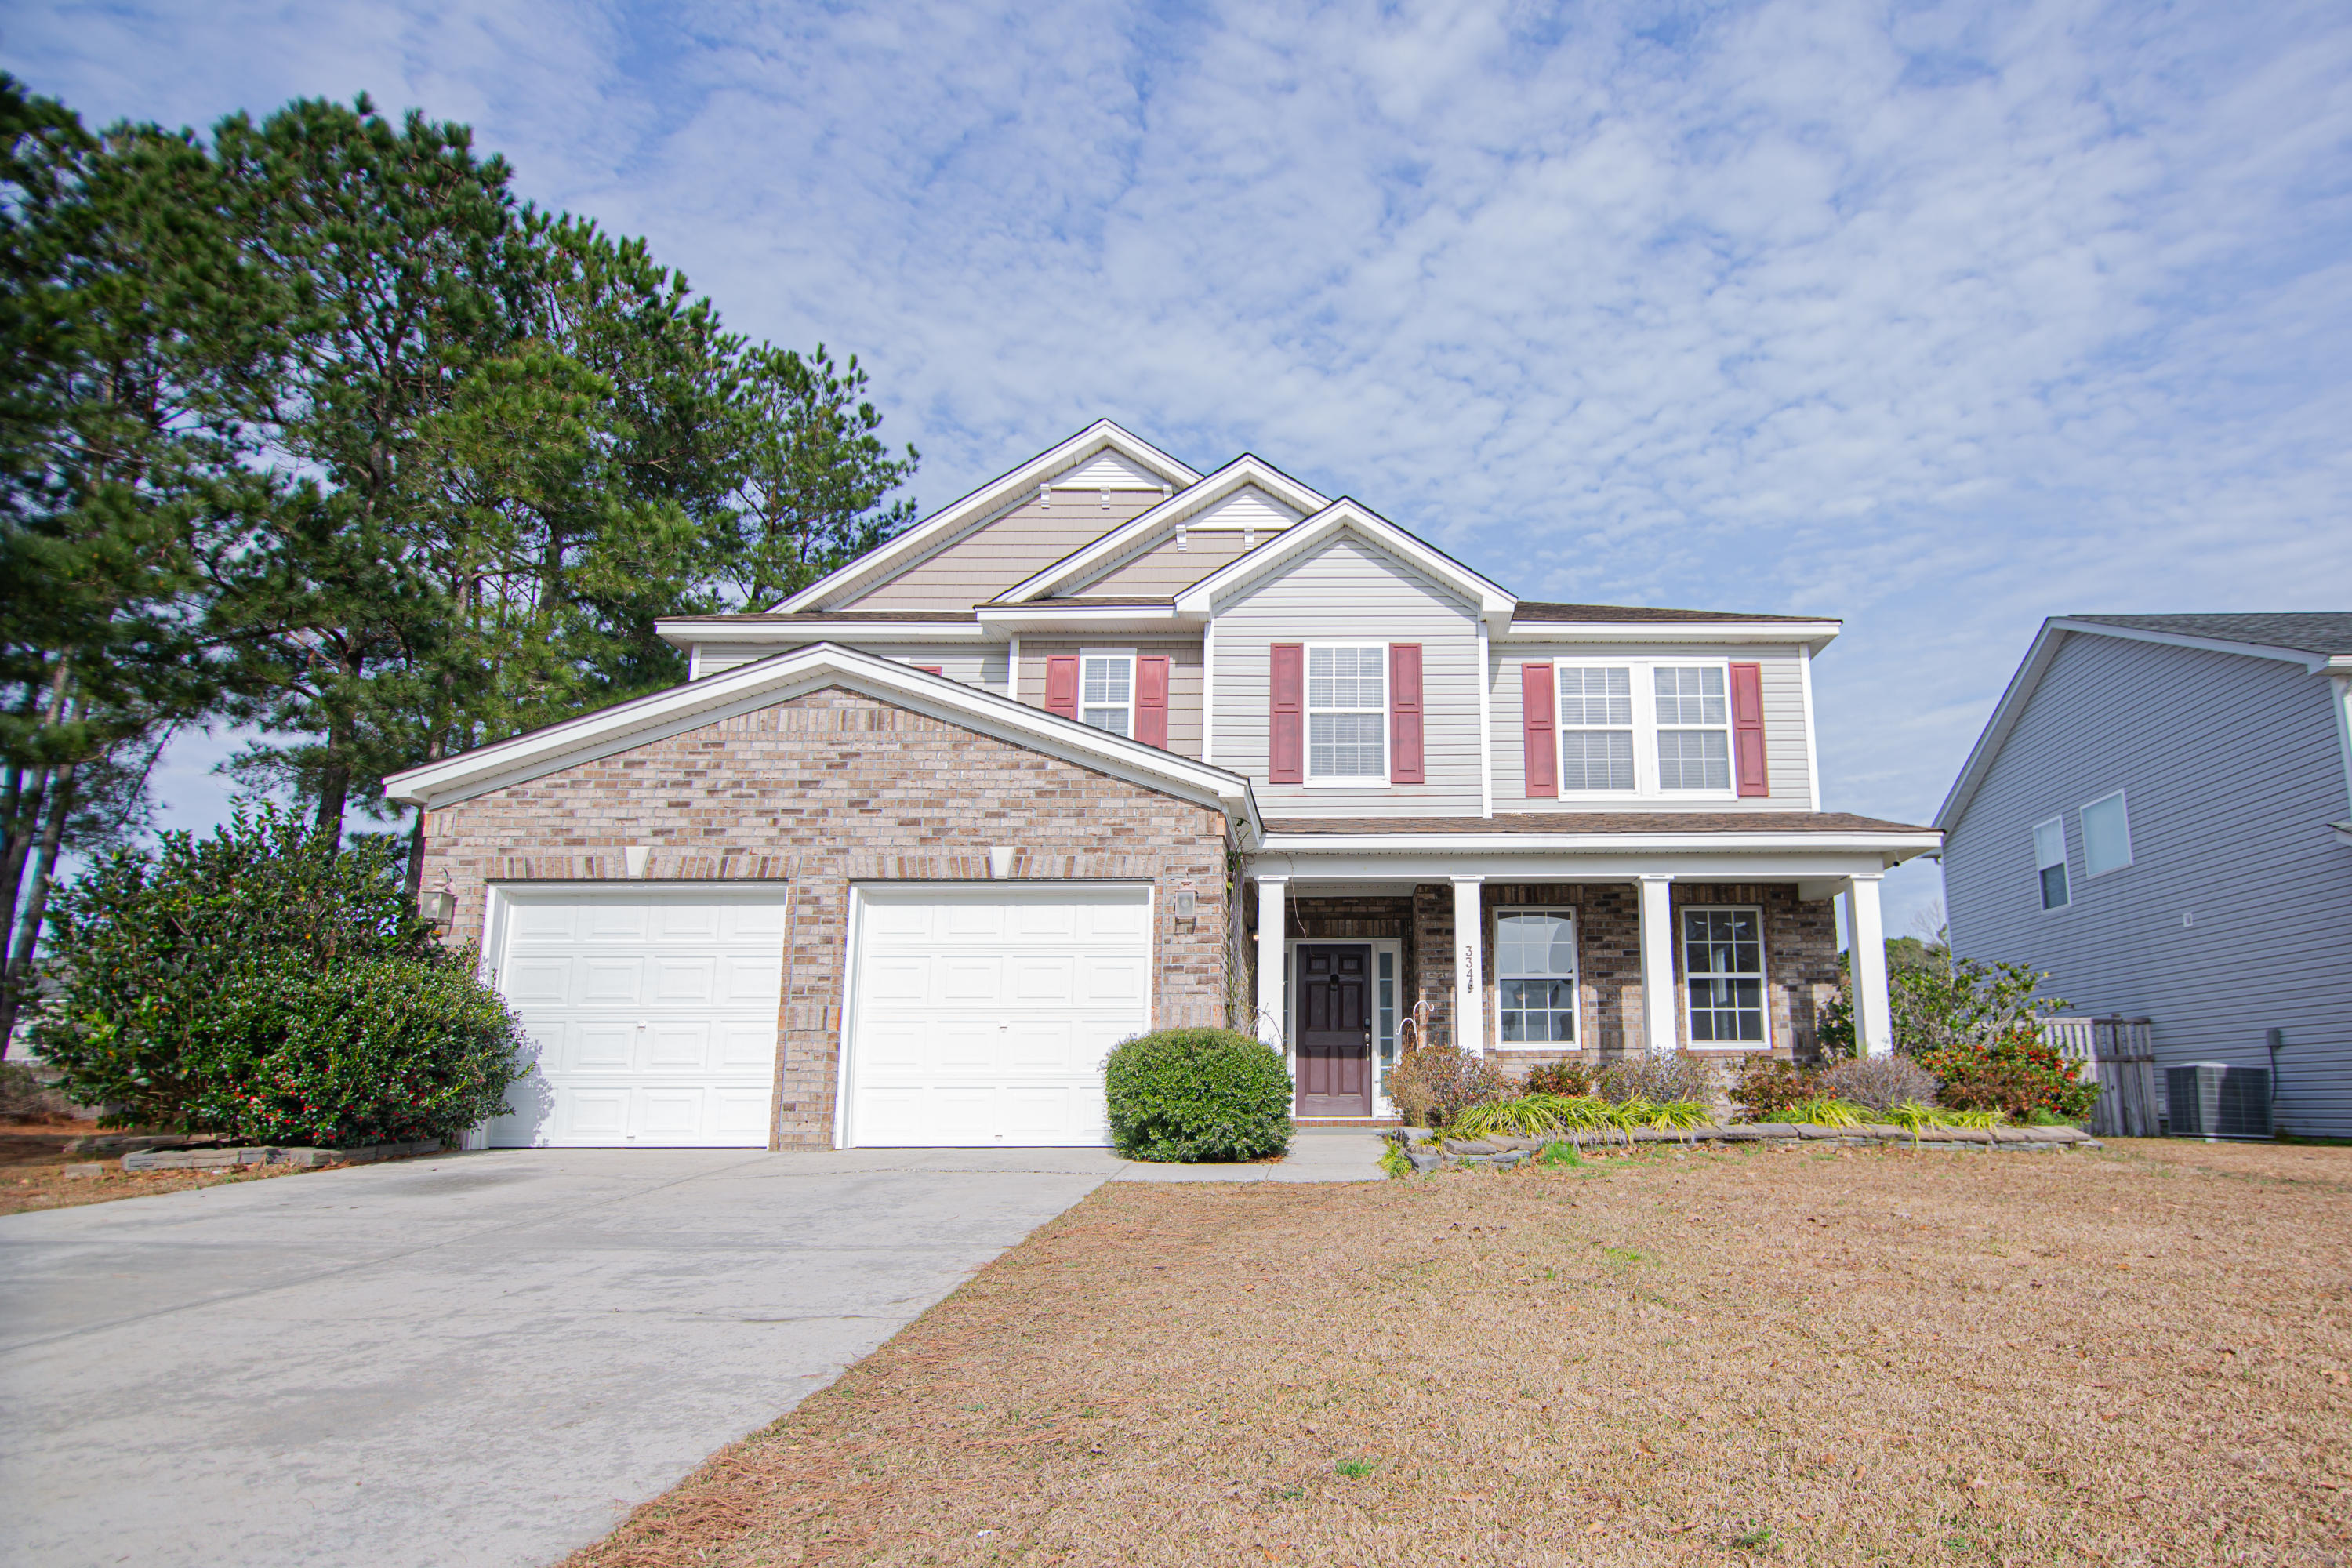 334 Albrighton Way Moncks Corner, Sc 29461